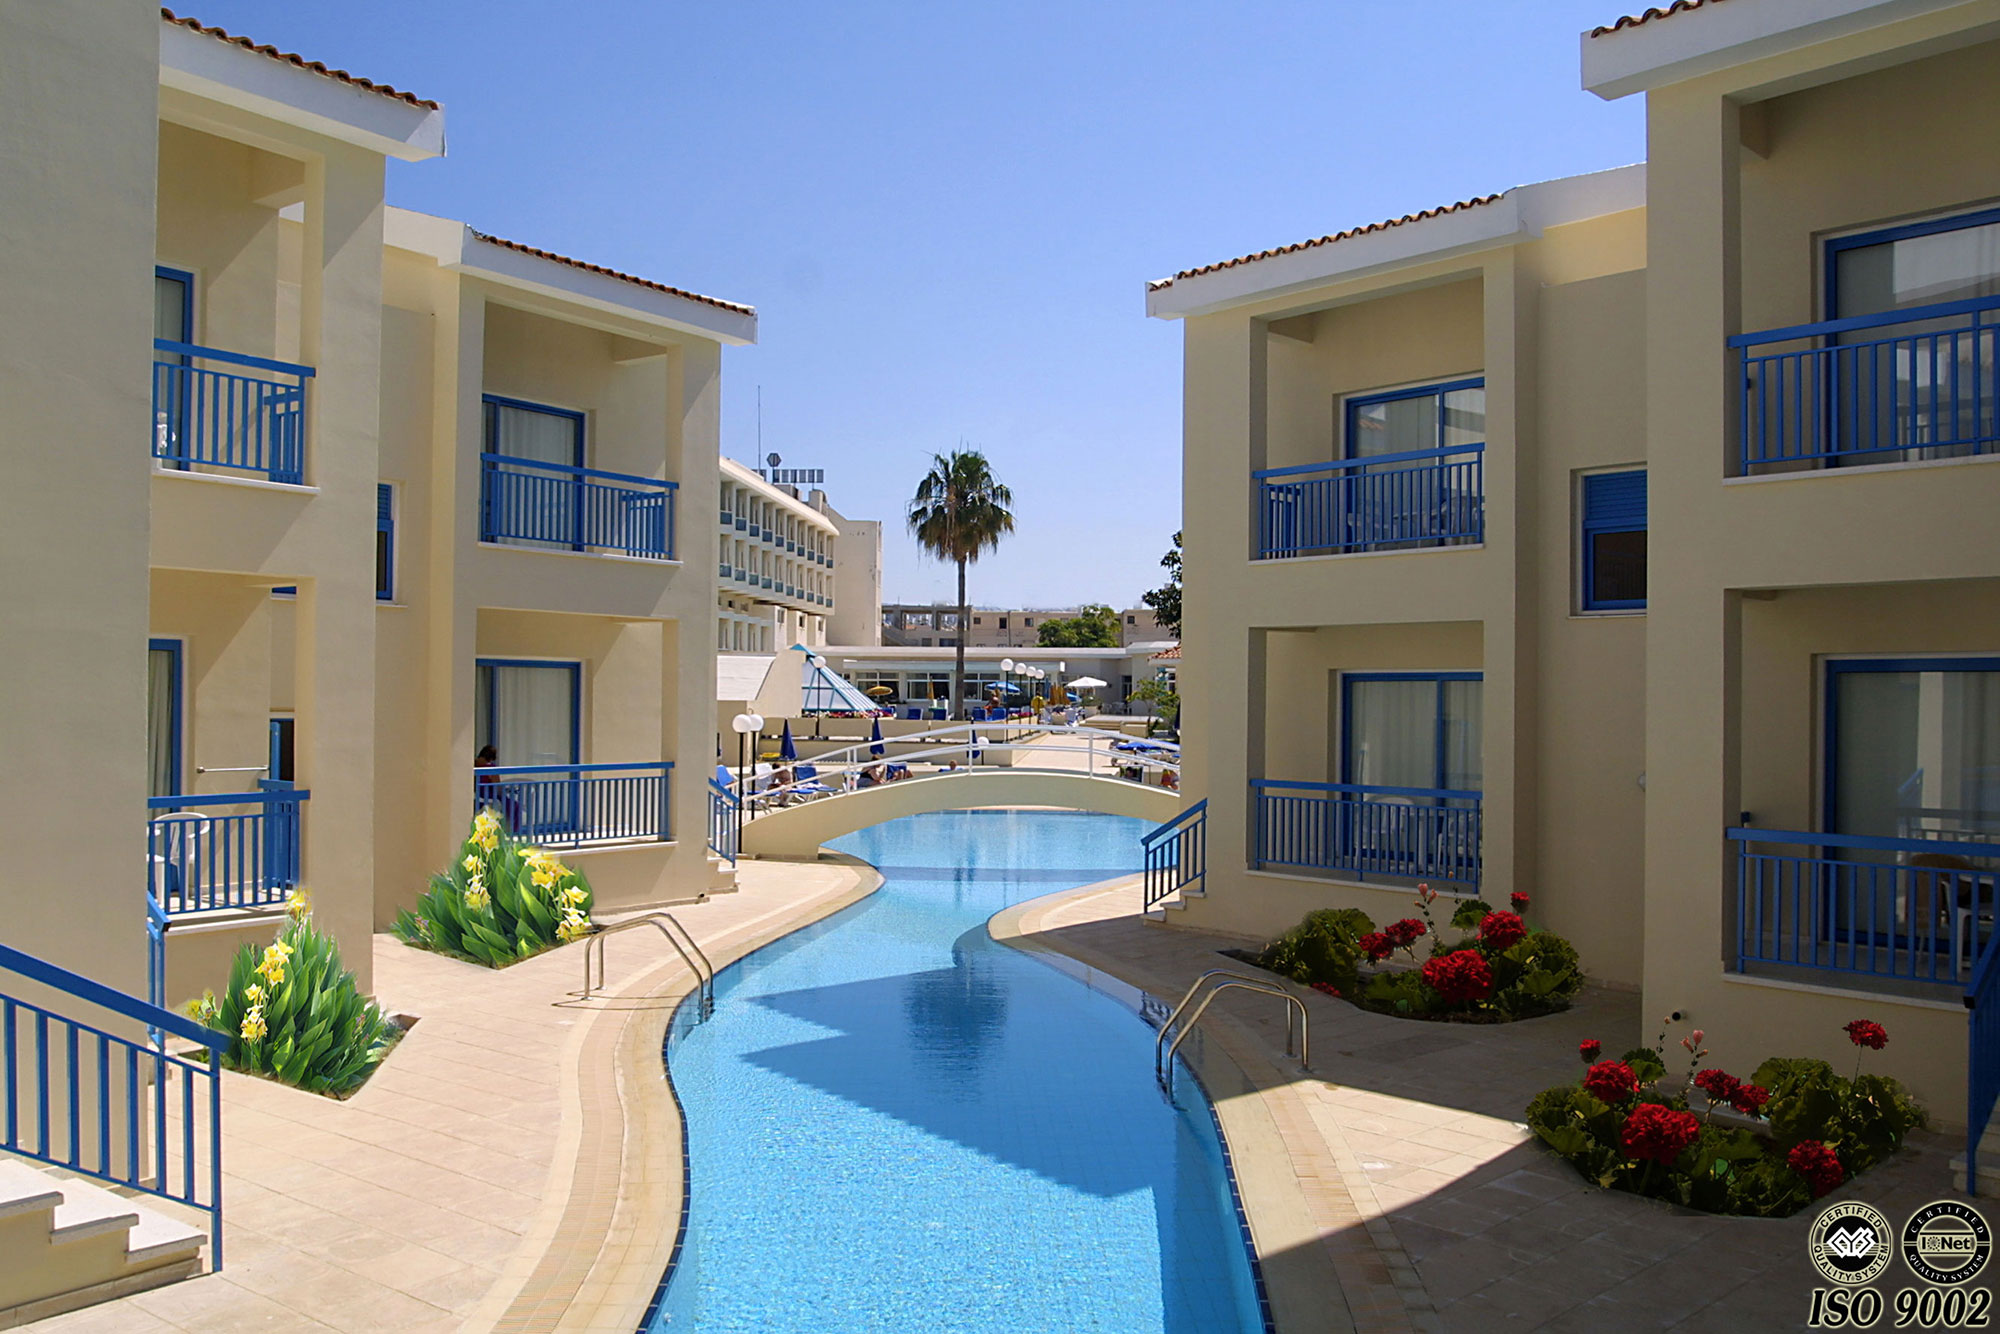 Disabled Access Holidays Wheelchair Accessible Accommodation In The Kissos Hotel Paphos Town